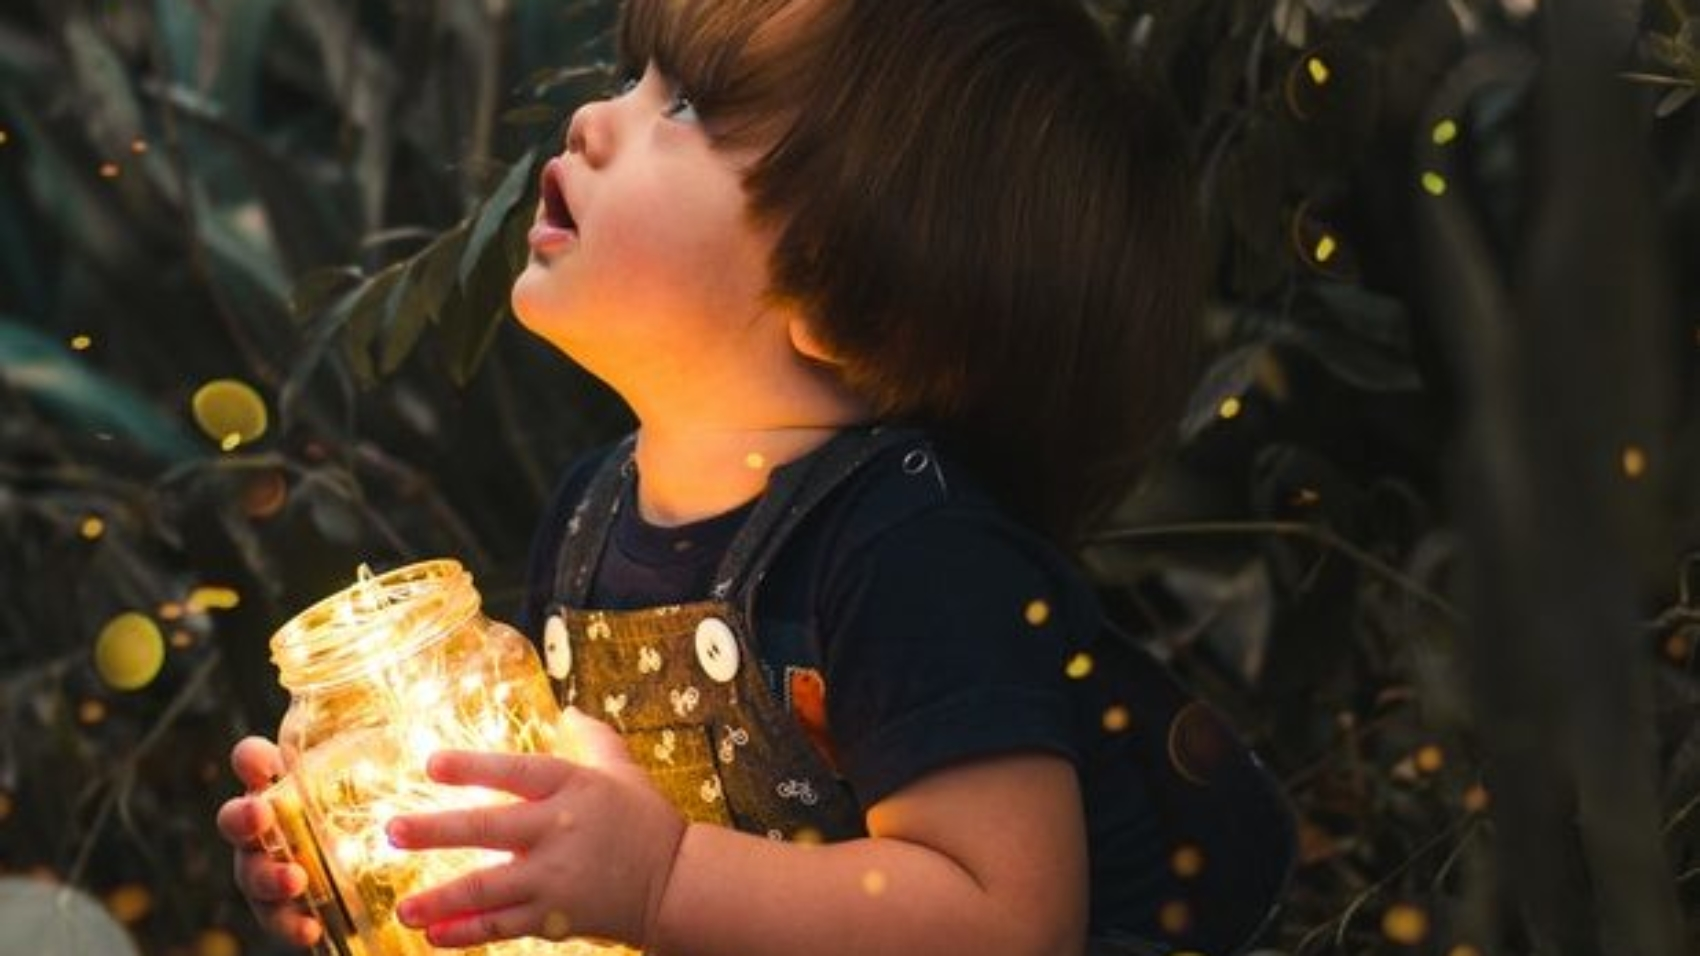 child-holding-clear-glass-jar-with-yellow-light-2026960